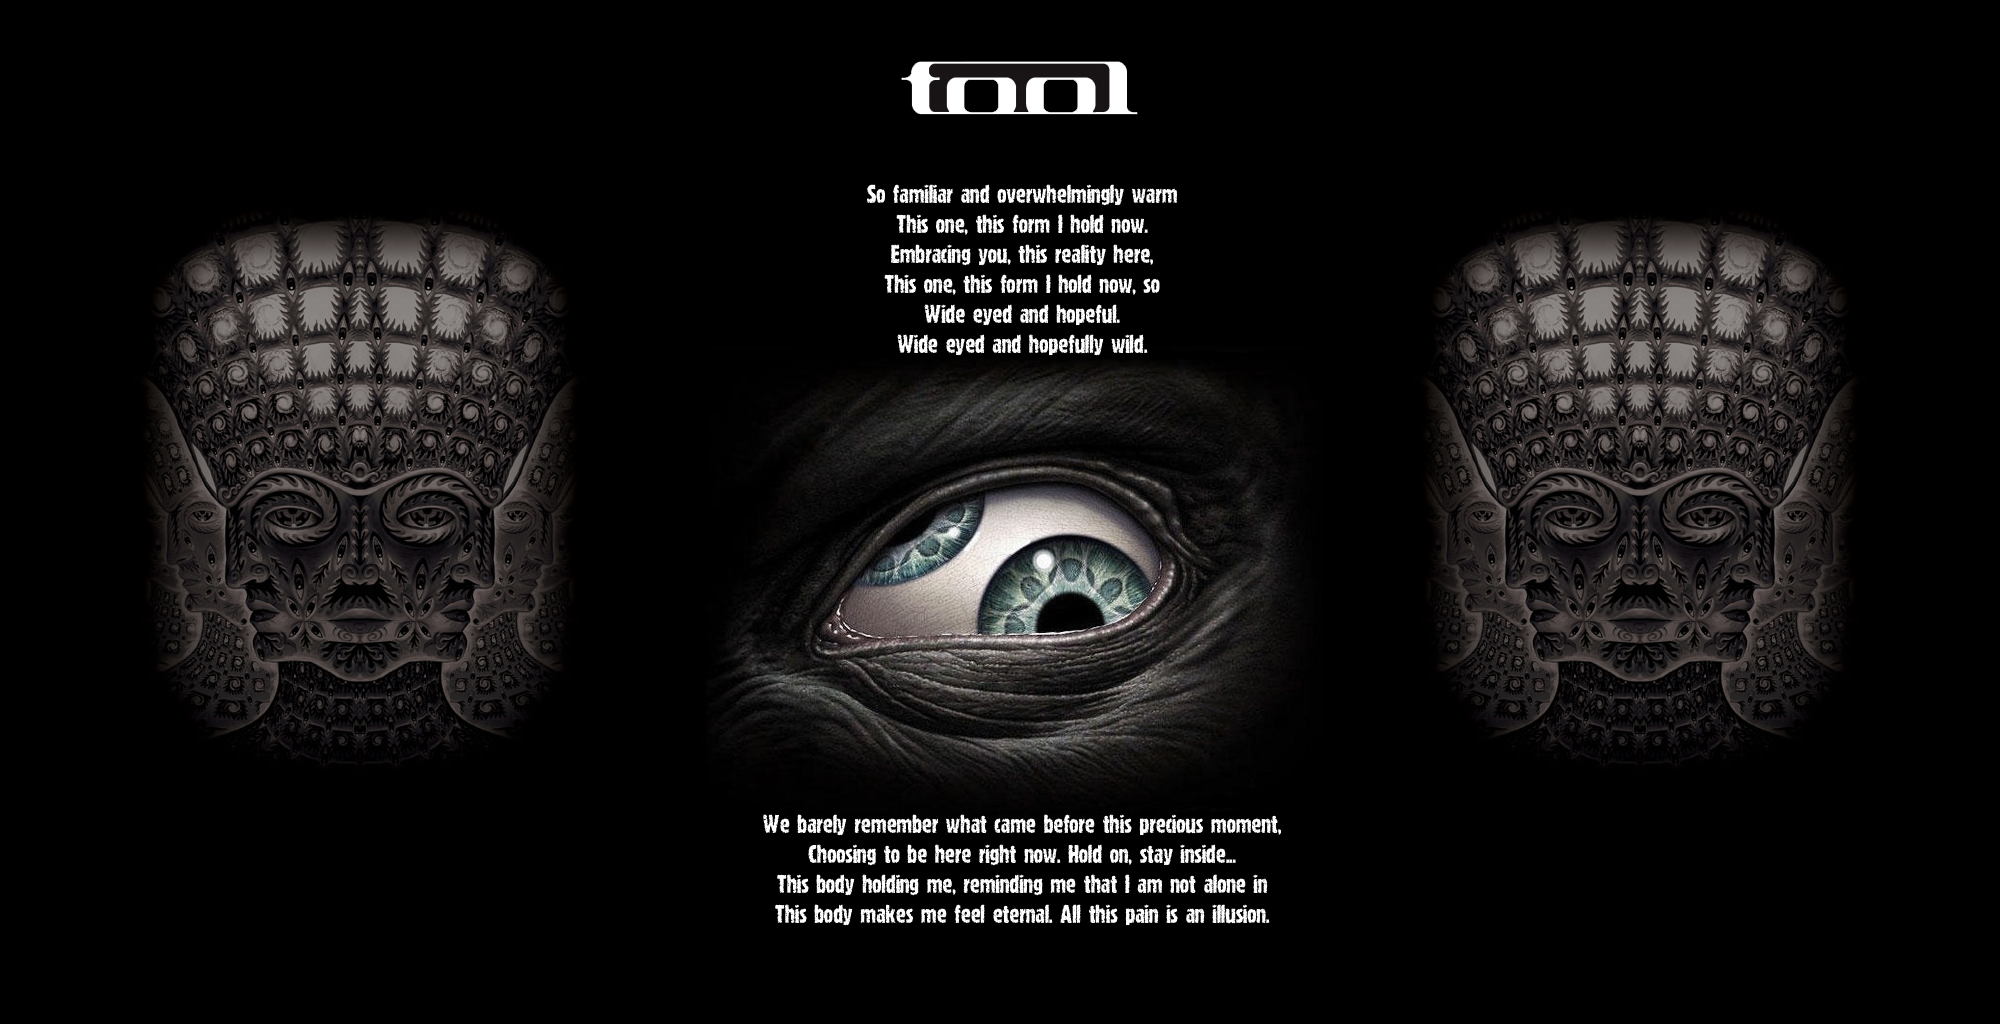 Tool Wallpaper 2 Redux PSD By Sk8rDude7 2000x1024